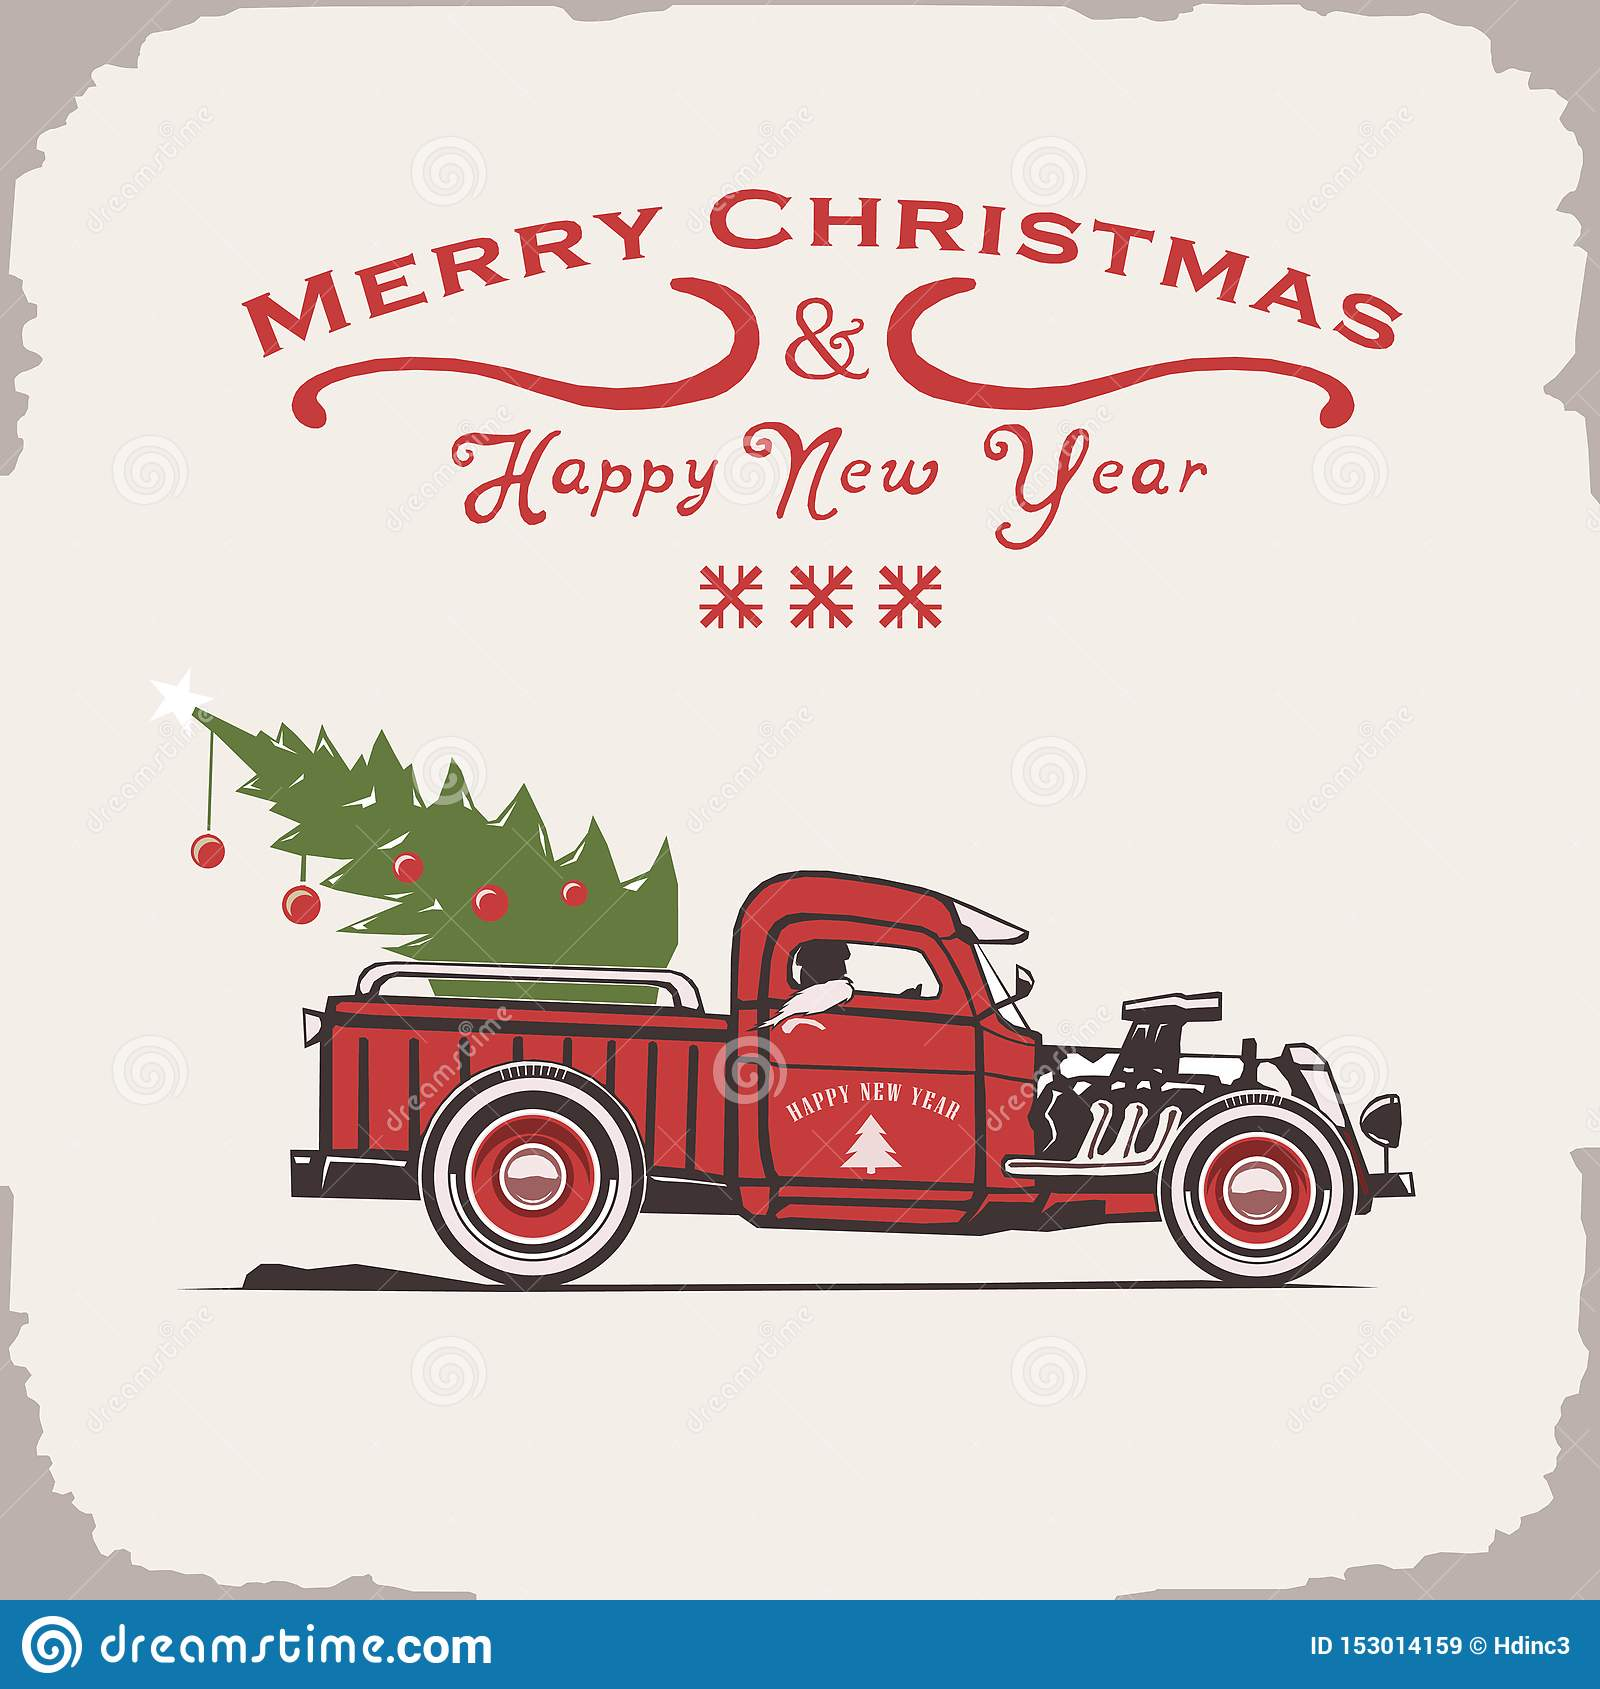 Christmas truck, side view, vector image, old card style